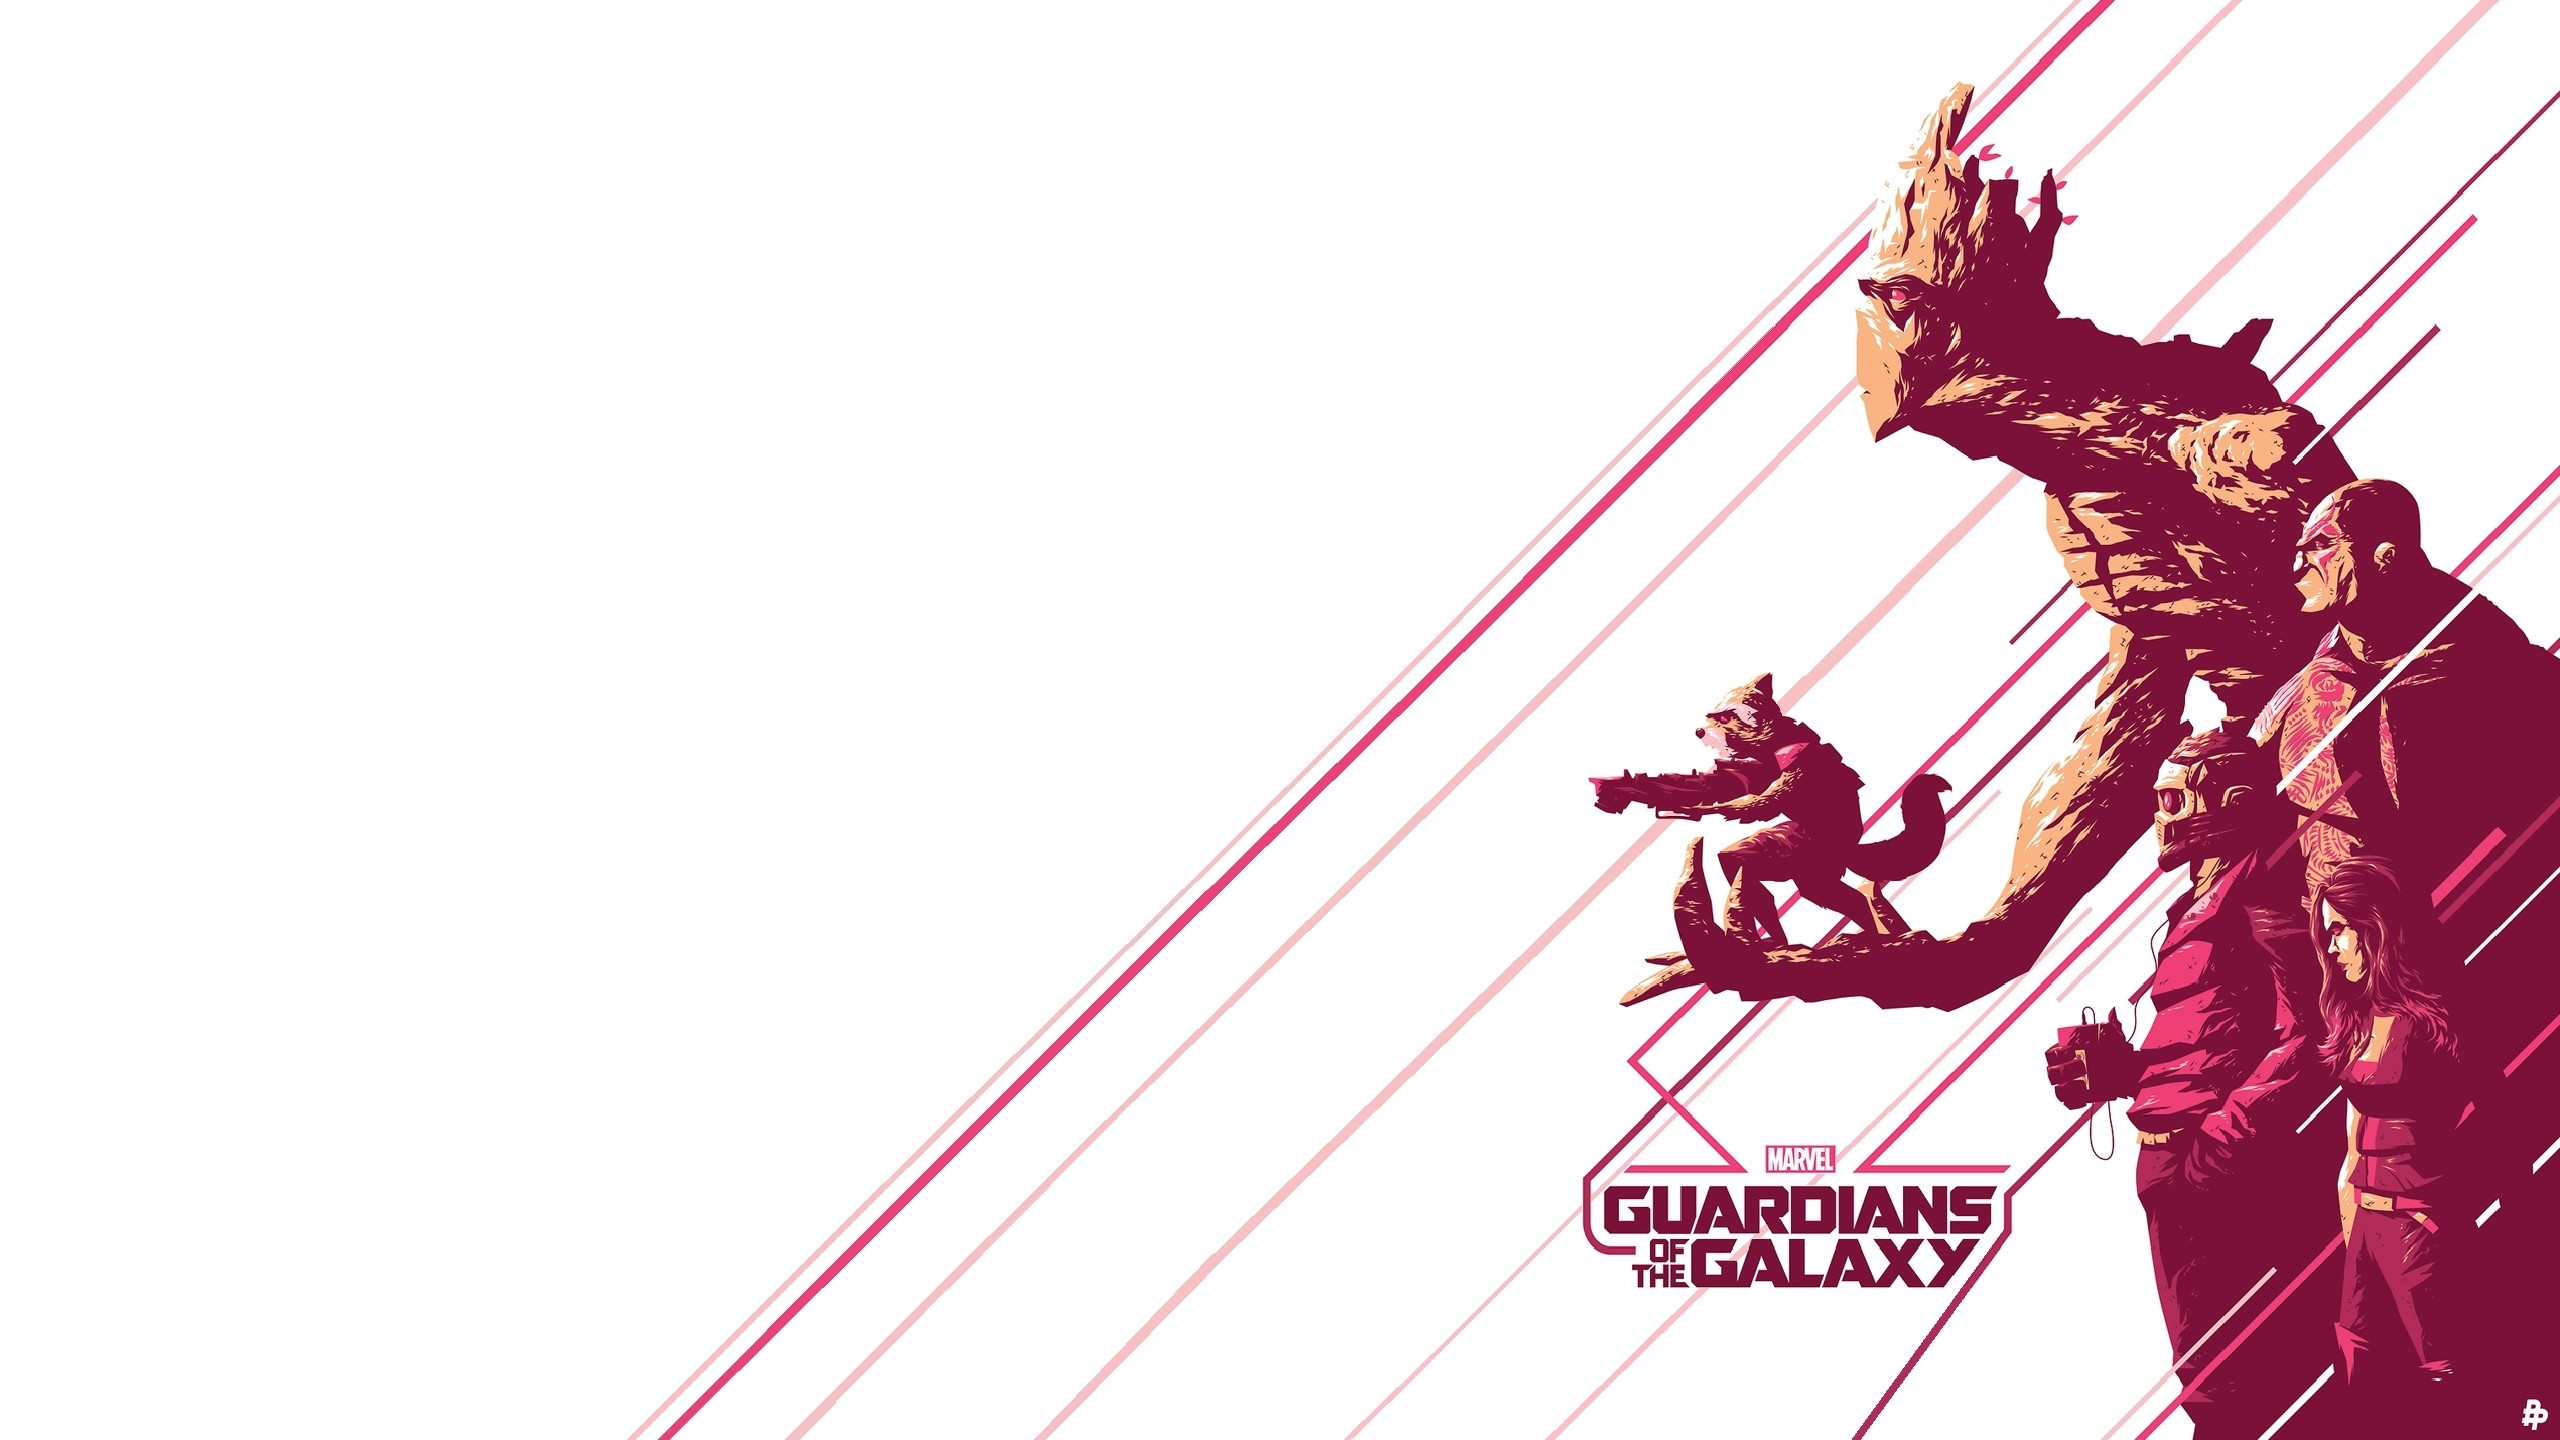 Res: 2560x1440, Movie - Guardians of the Galaxy Peter Quill Gamora Drax The Destroyer Groot  Rocket Raccoon Wallpaper